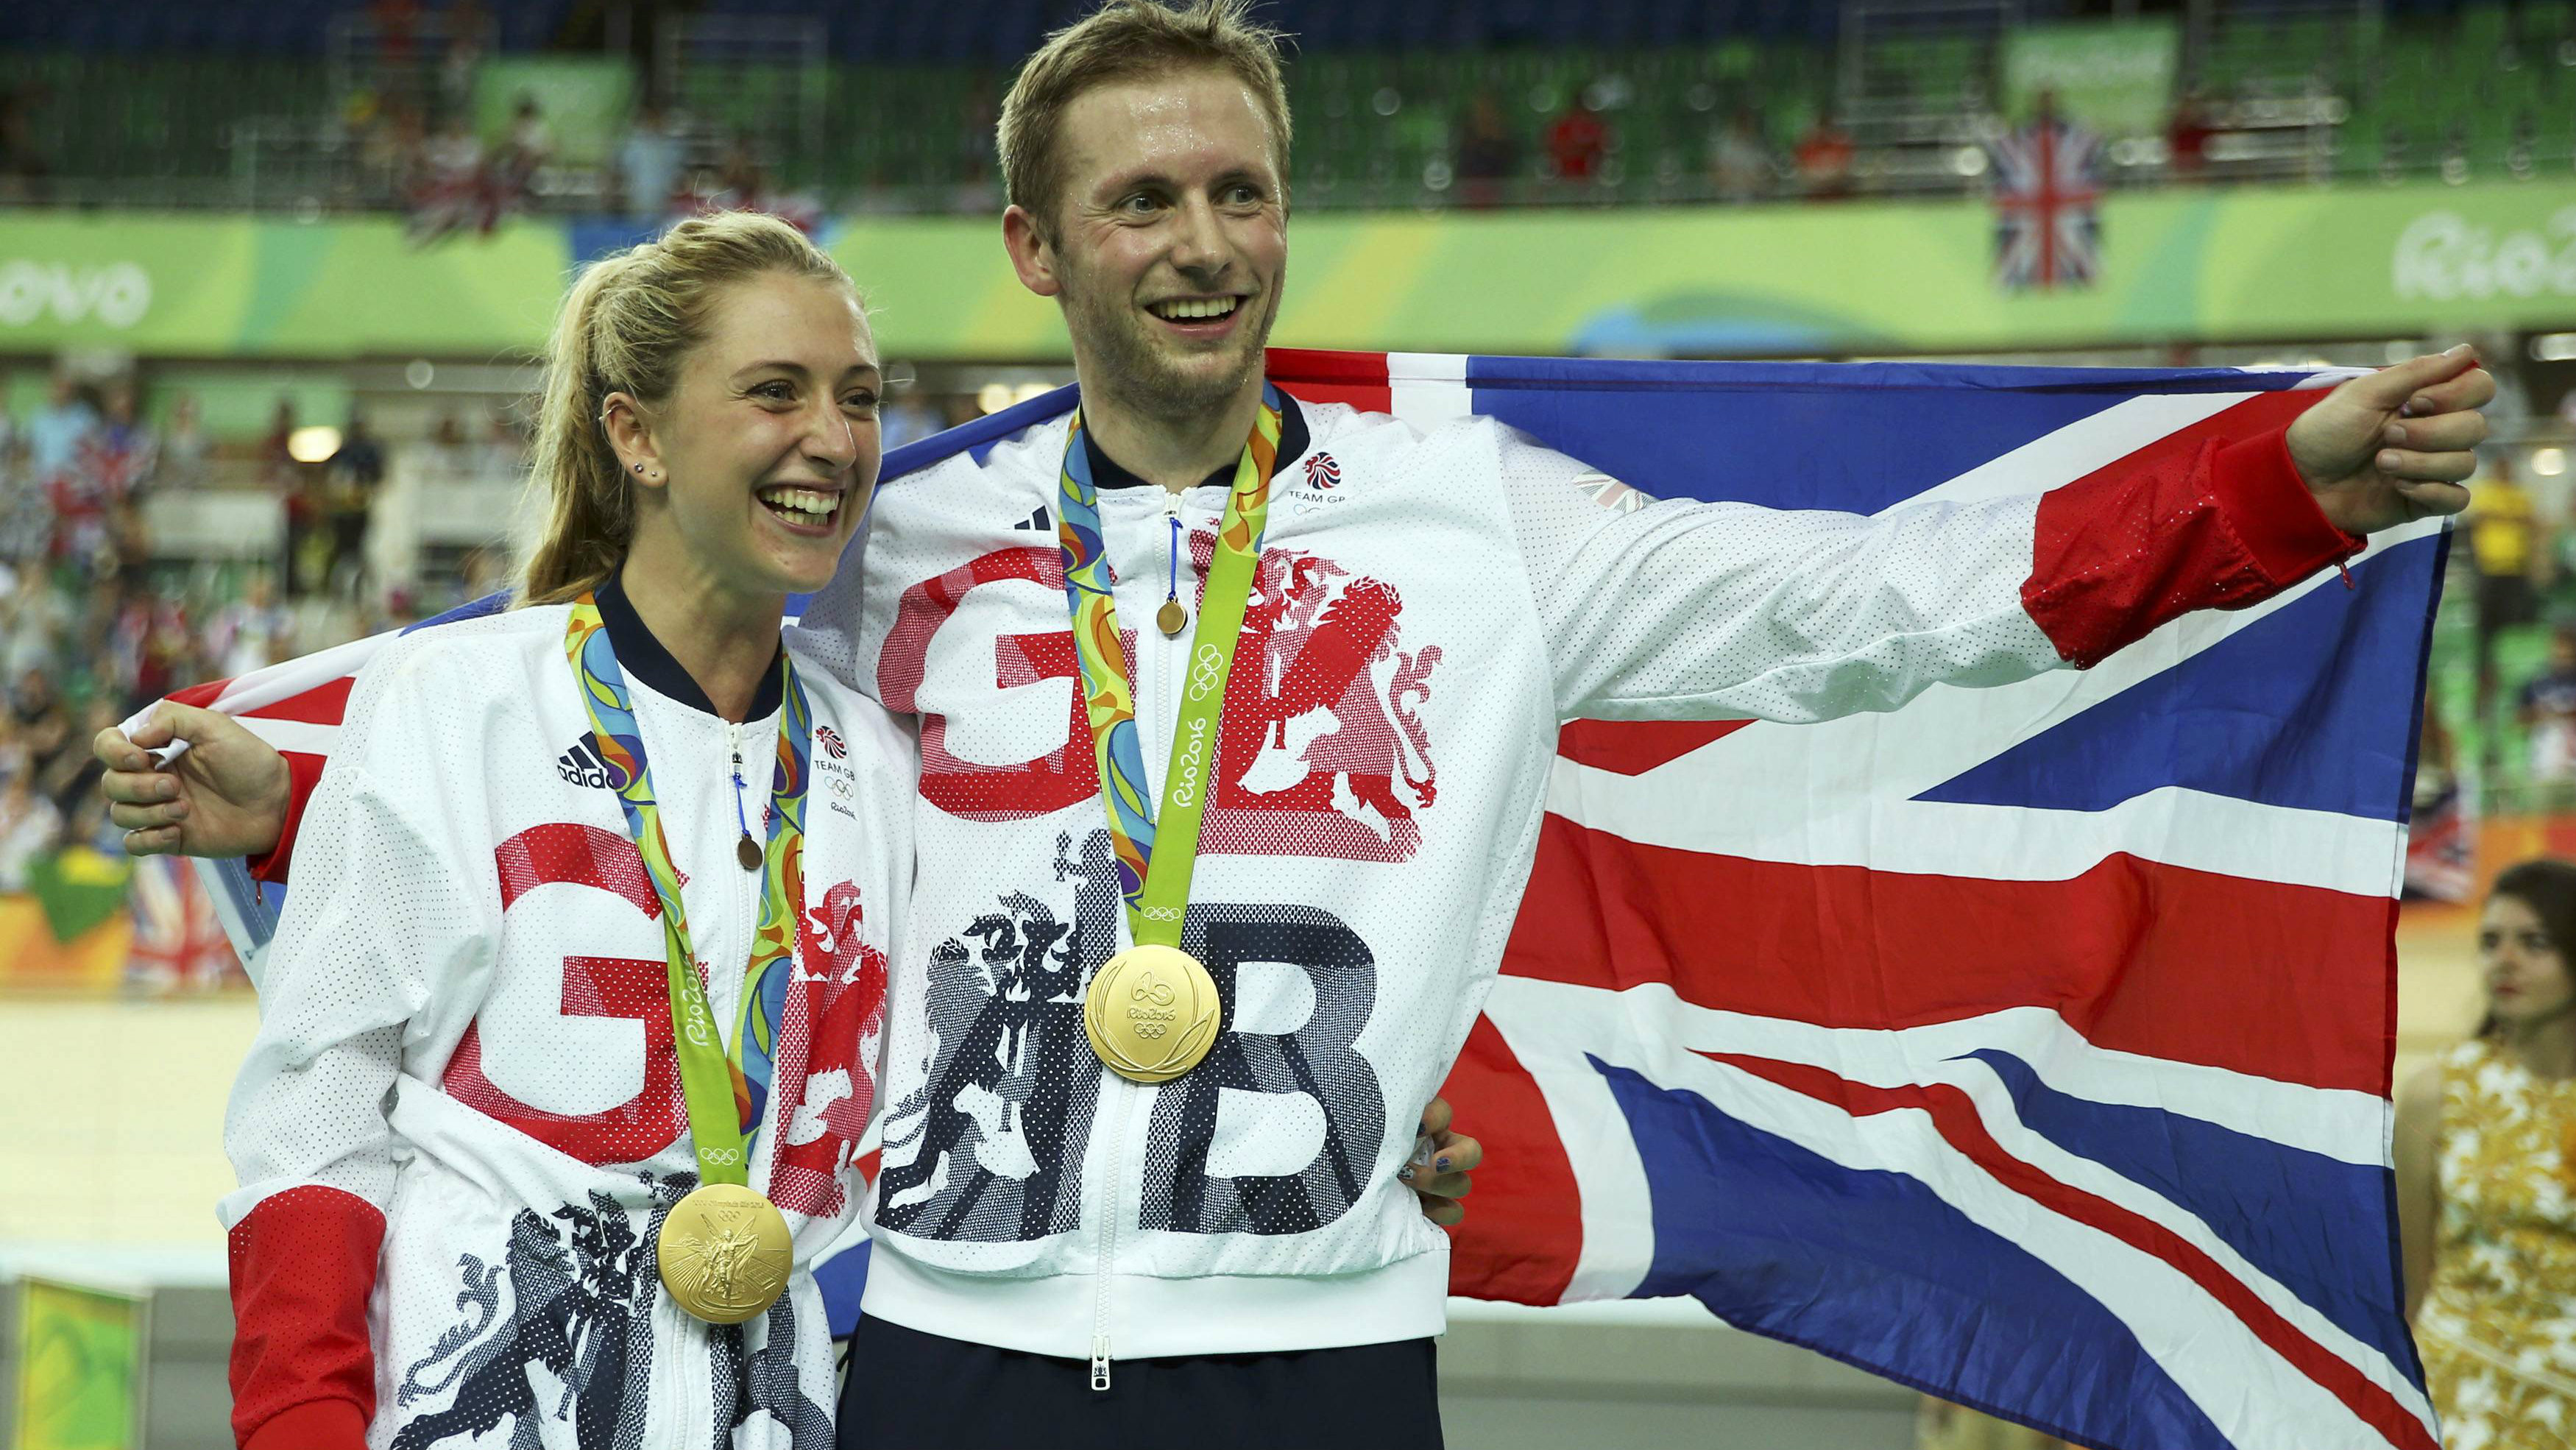 Jason Kenny and Laura Trott from Team GB's track cycling team celebrate their wins at the Rio Olympics 2016.